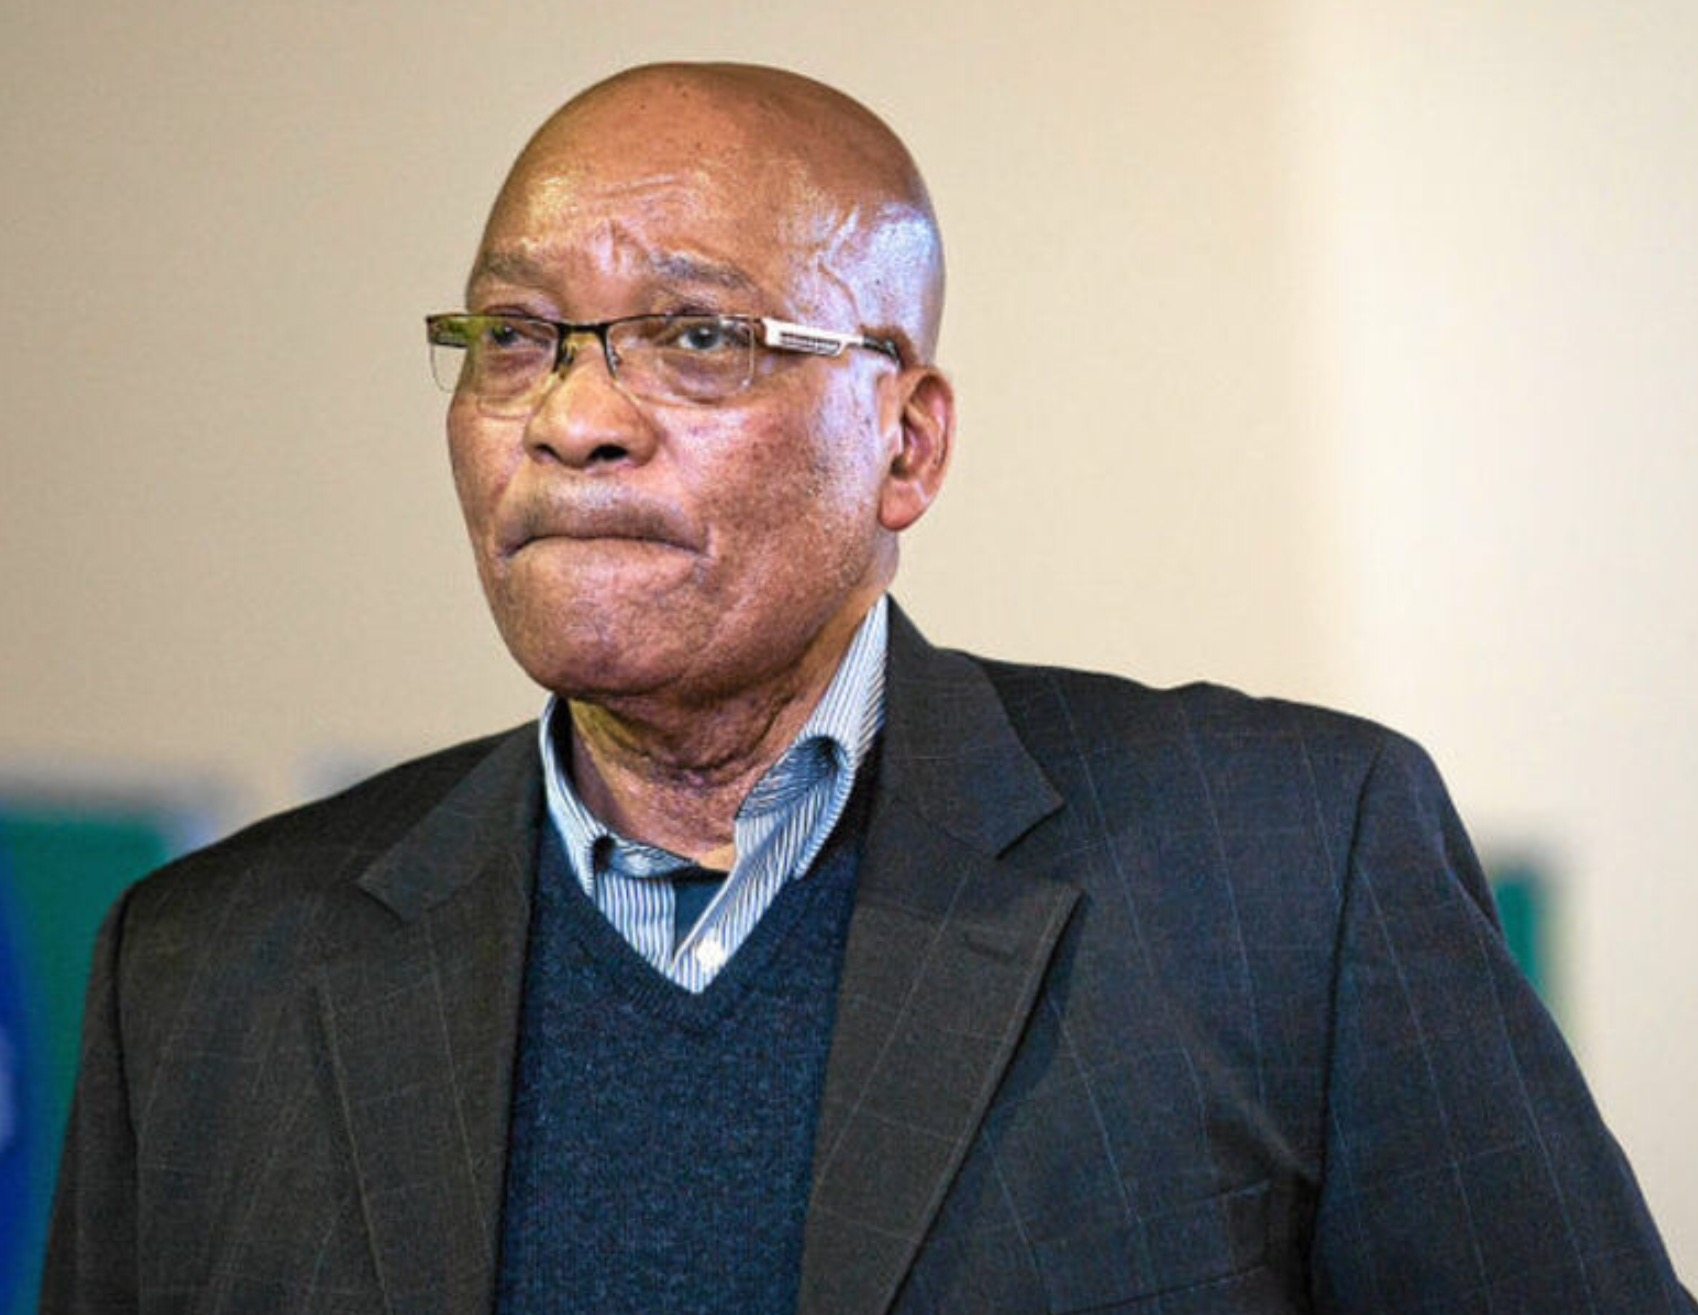 Zuma May Axe Some Ministers To Tighten Grip On Power, Say Senior ANC Leaders